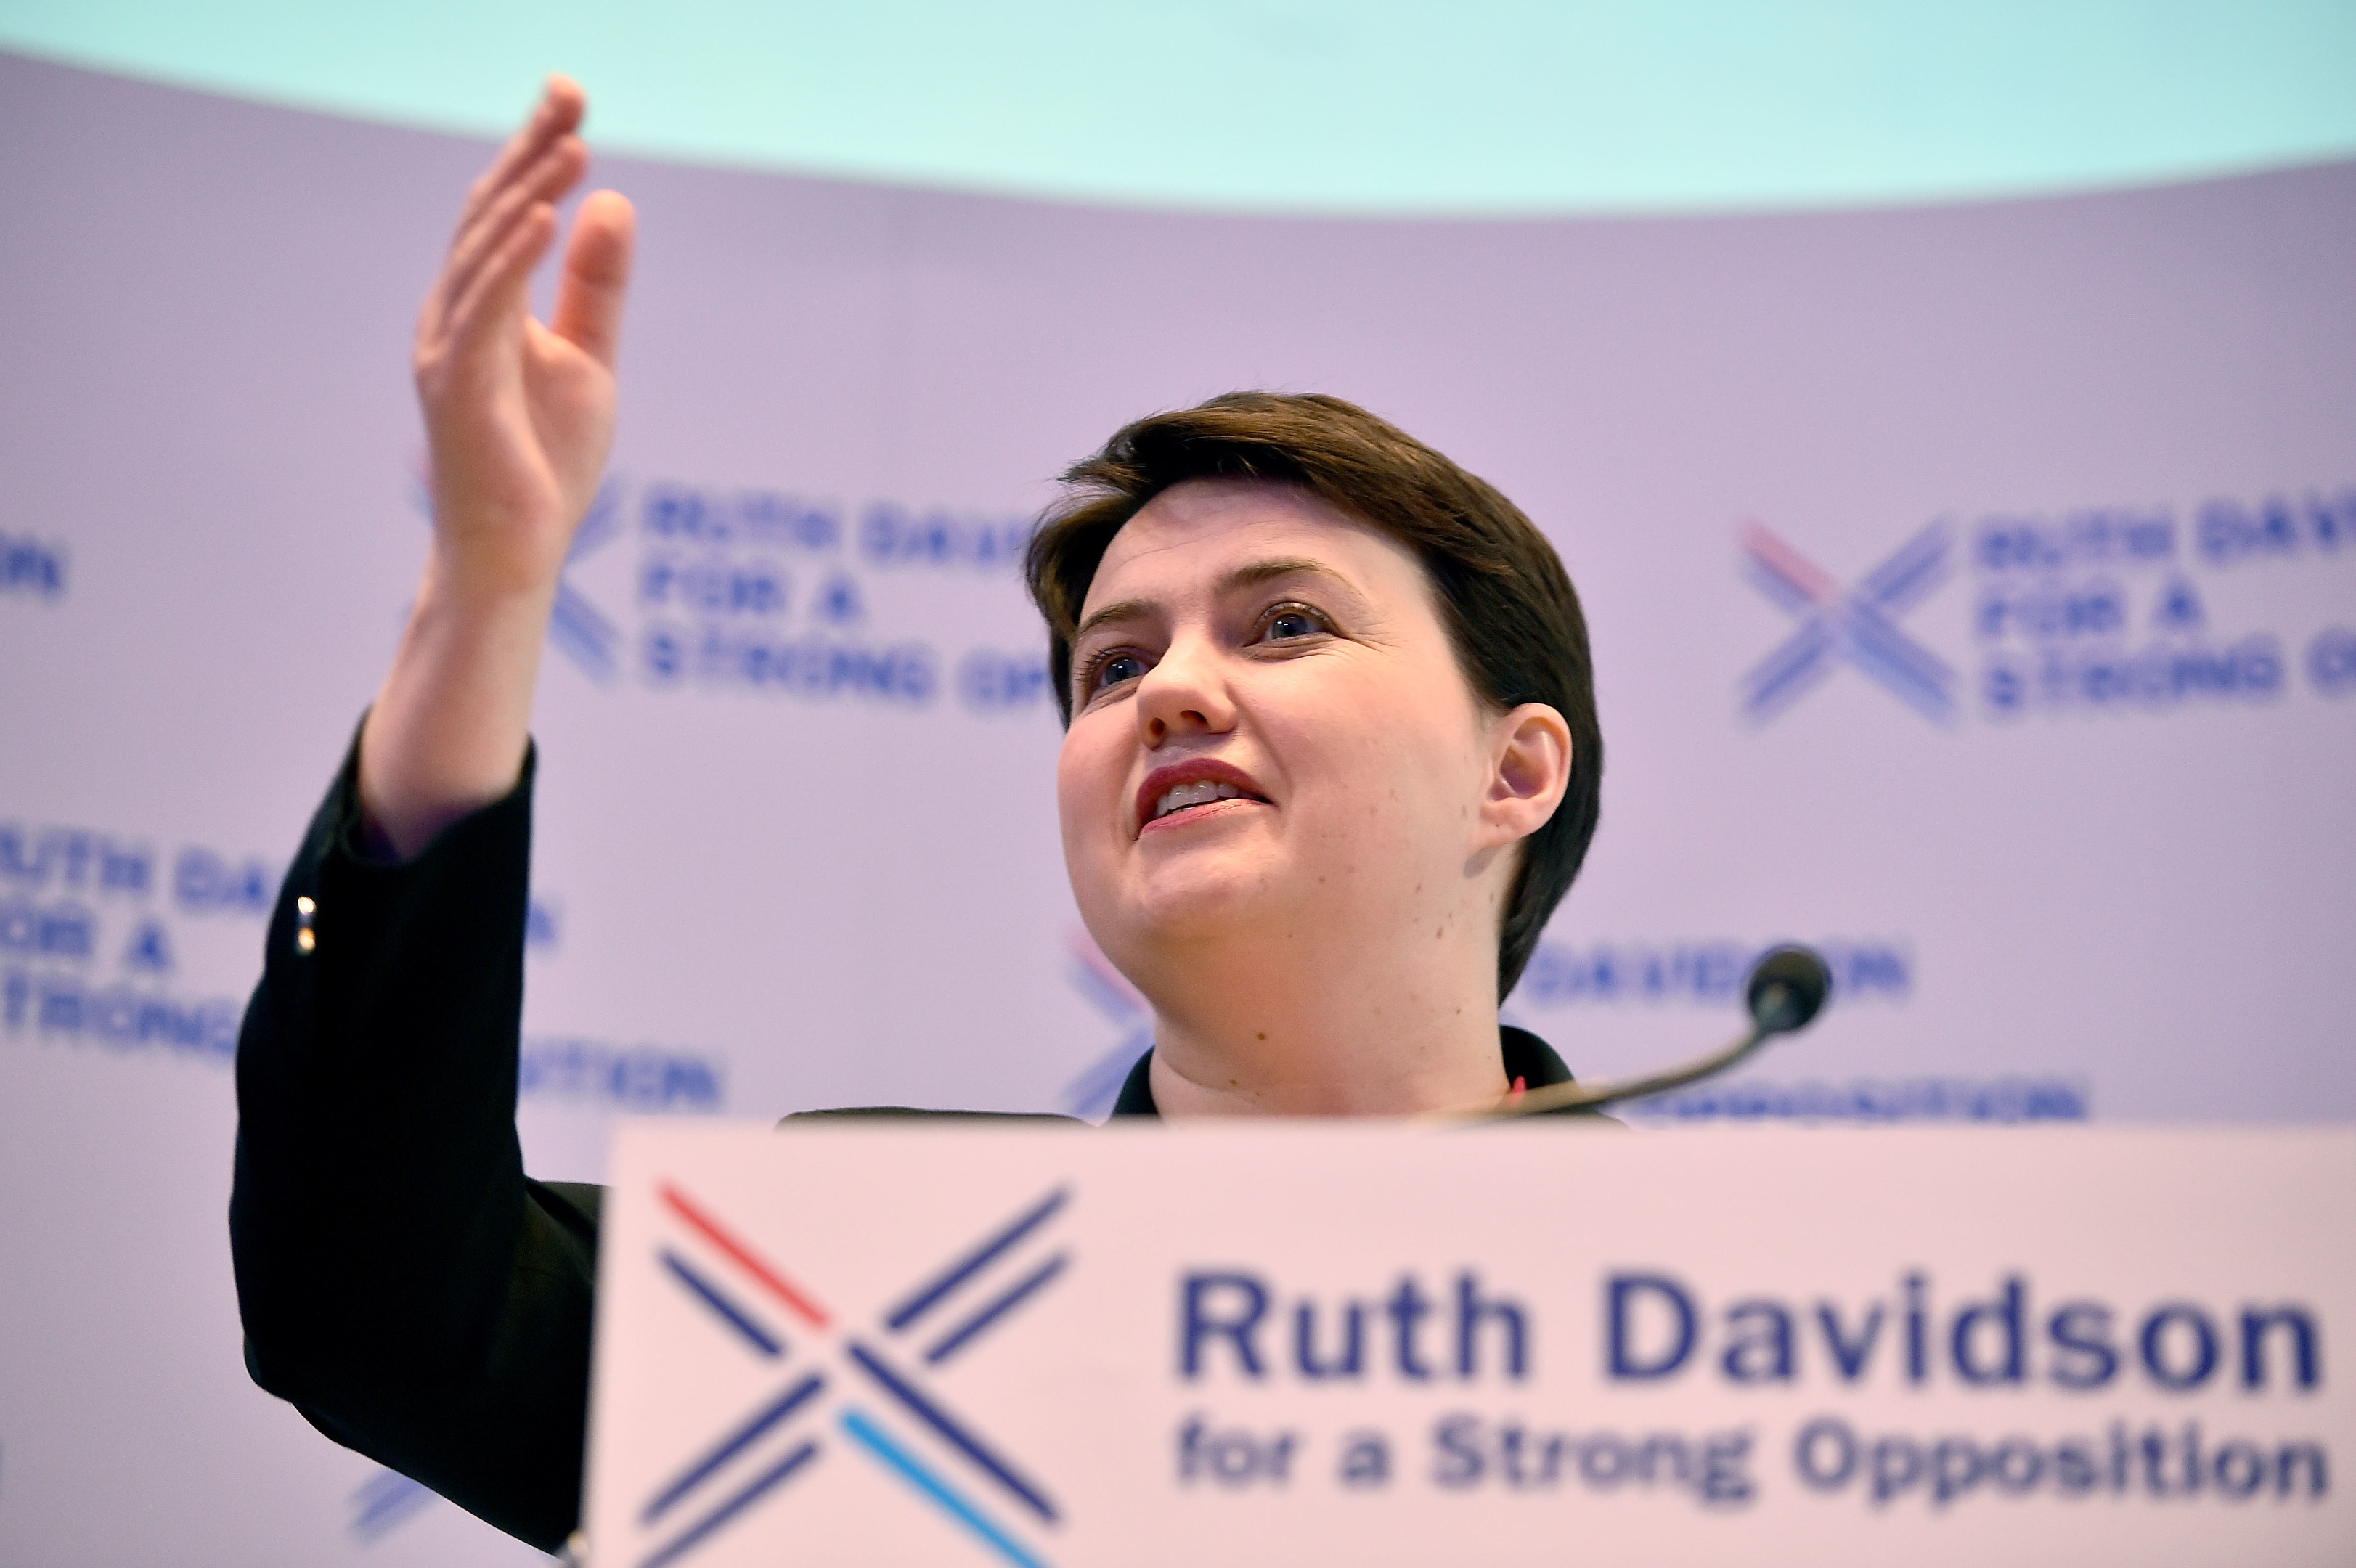 Ruth Davidson in front of her campaign slogan for the Scottish Parliament election